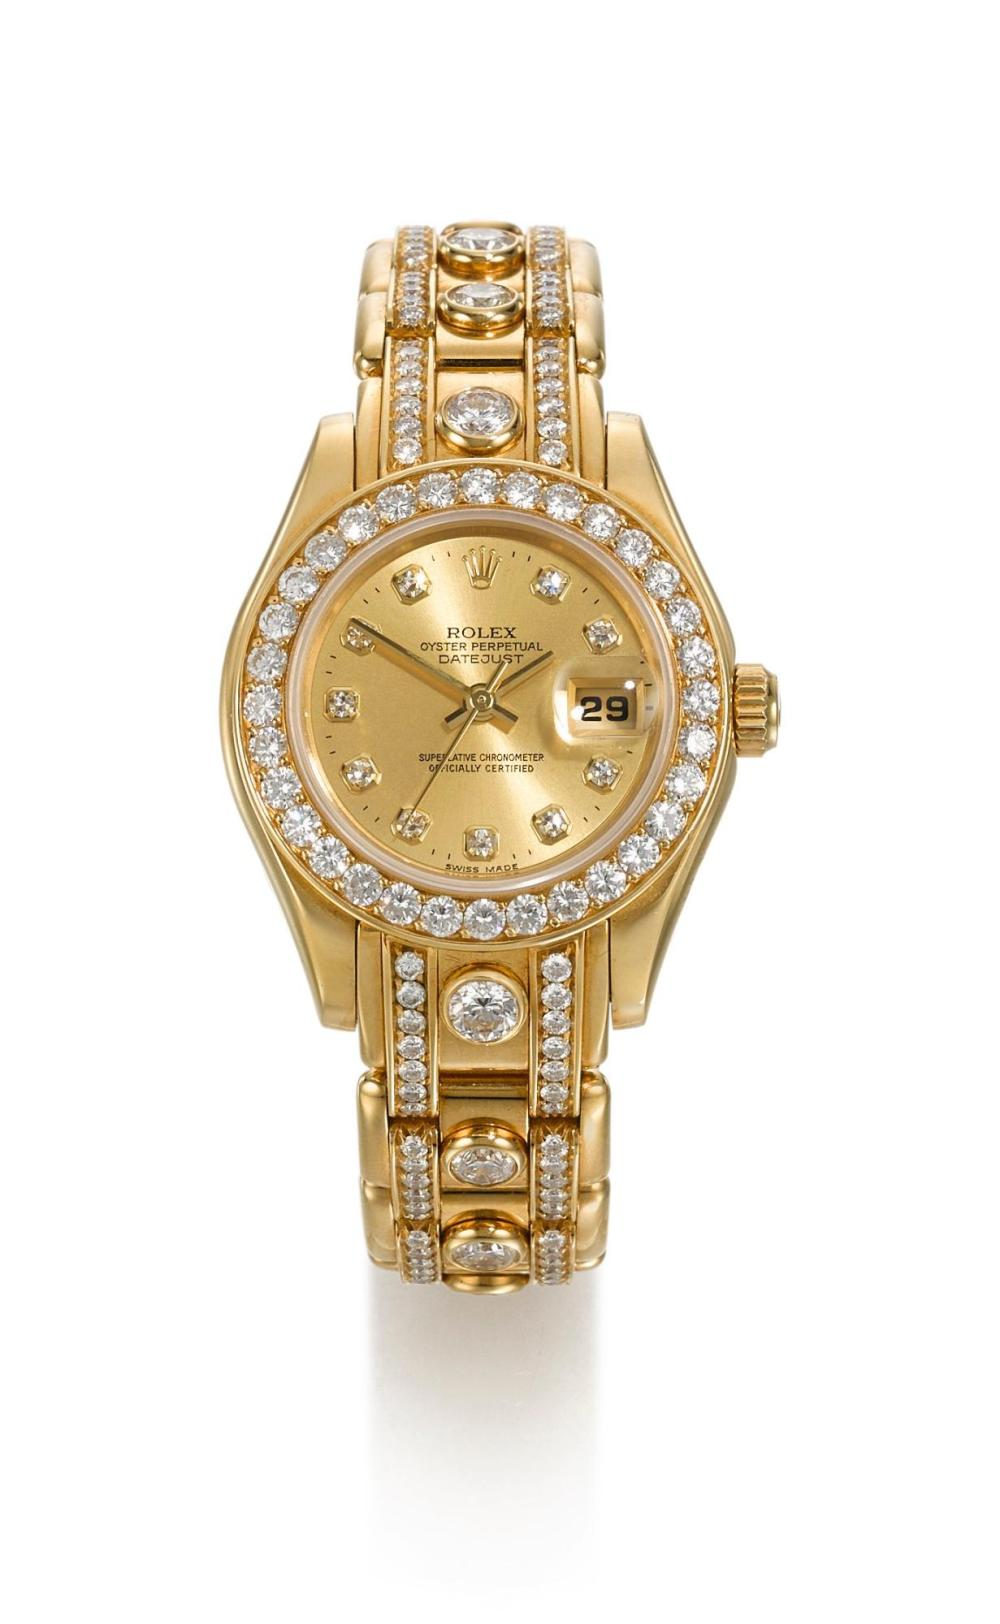 ROLEX | A LADY'S YELLOW GOLD DIAMOND-SET AUTOMATIC CENTRE SECONDS WRISTWATCH WITH DATE AND BRACELET REF 69298 CASE W772484 DATEJUST CIRCA 1995